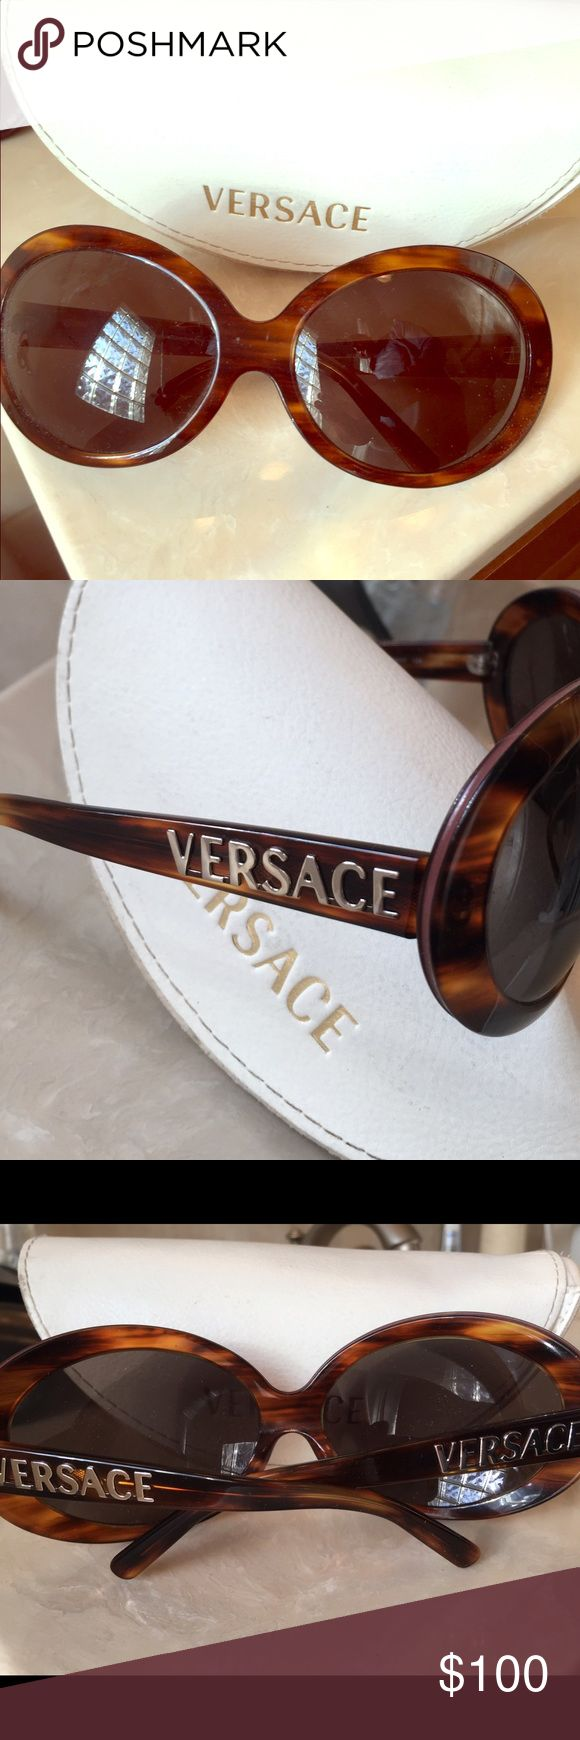 Versace Brand Sunglasses Excellent condition Versace sunglasses. No flaws. Comes with case. Jackie O type style. Versace Accessories Sunglasses